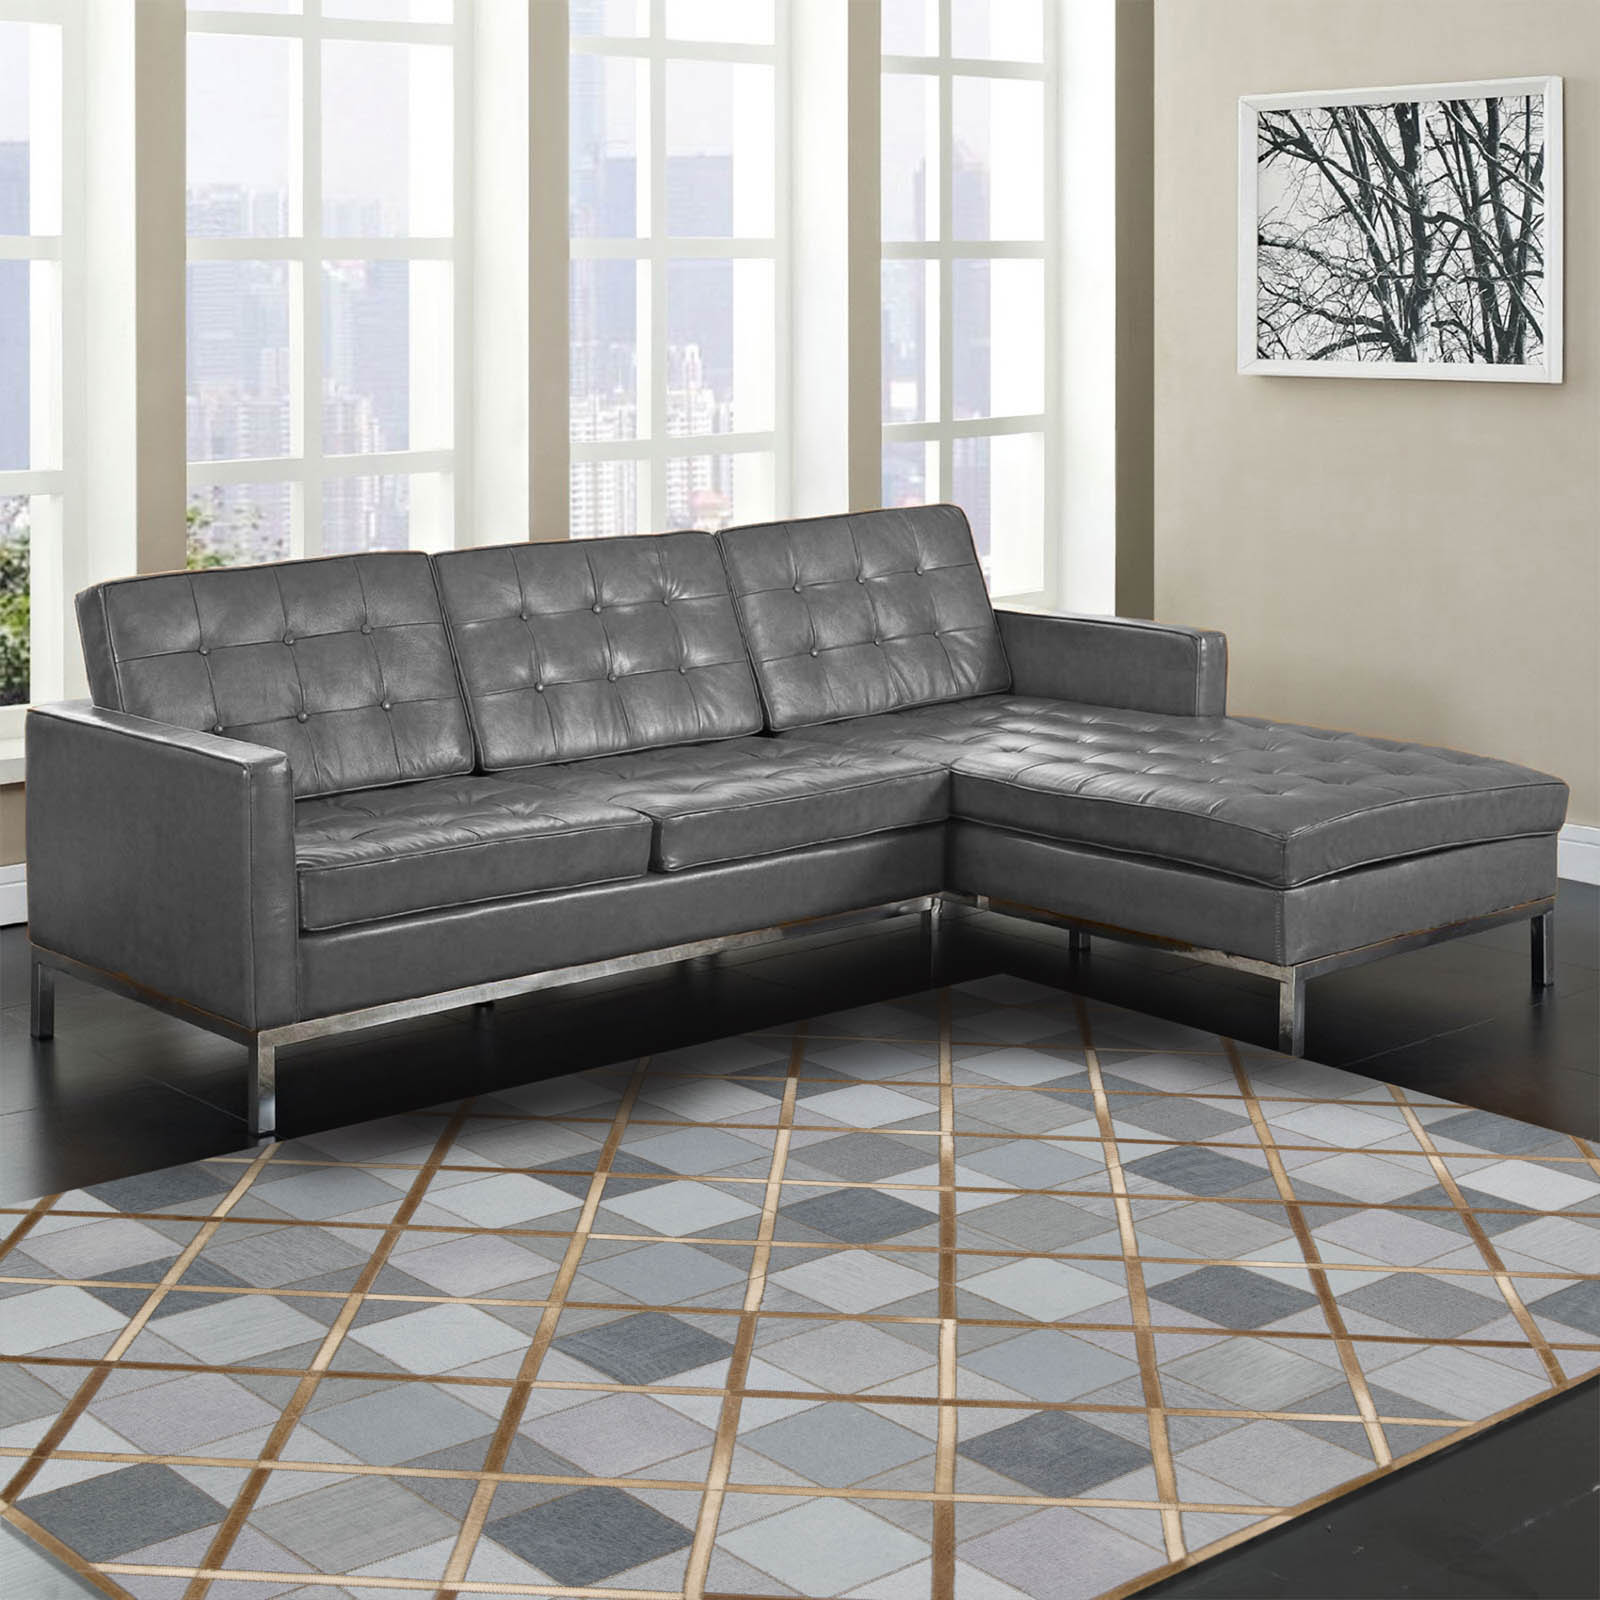 Cooper Rugs COP01 in Denim by Barclay Butera